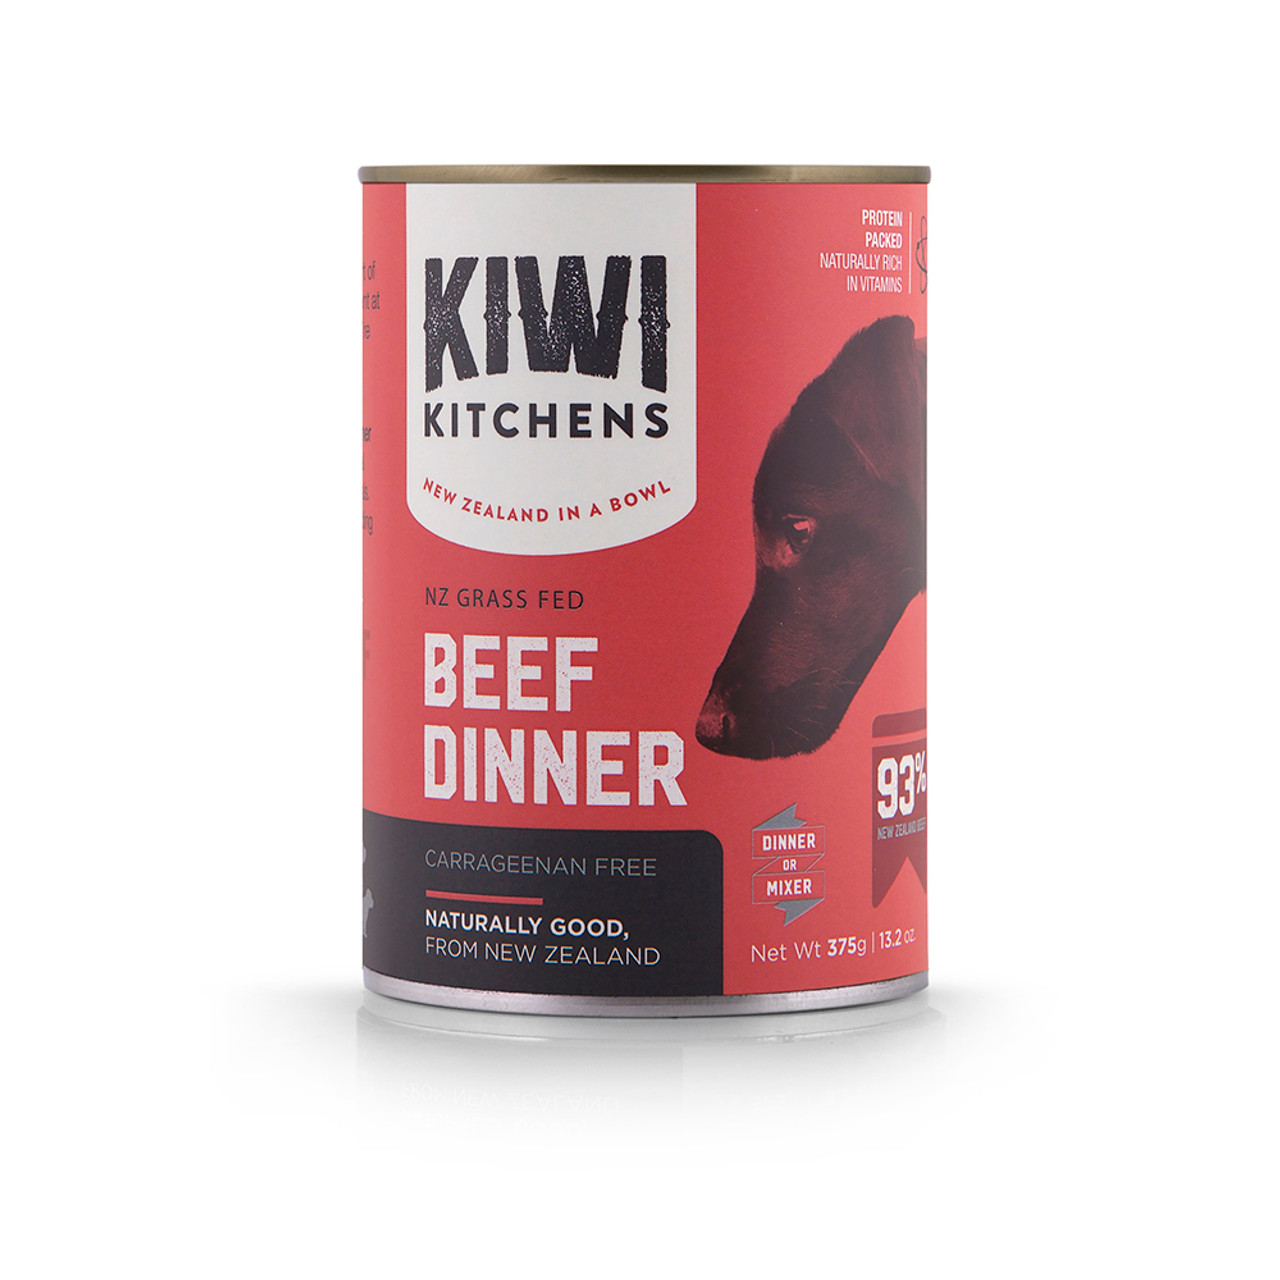 Kiwi Kitchens Grass Fed Beef Dinner Canned Dog Food